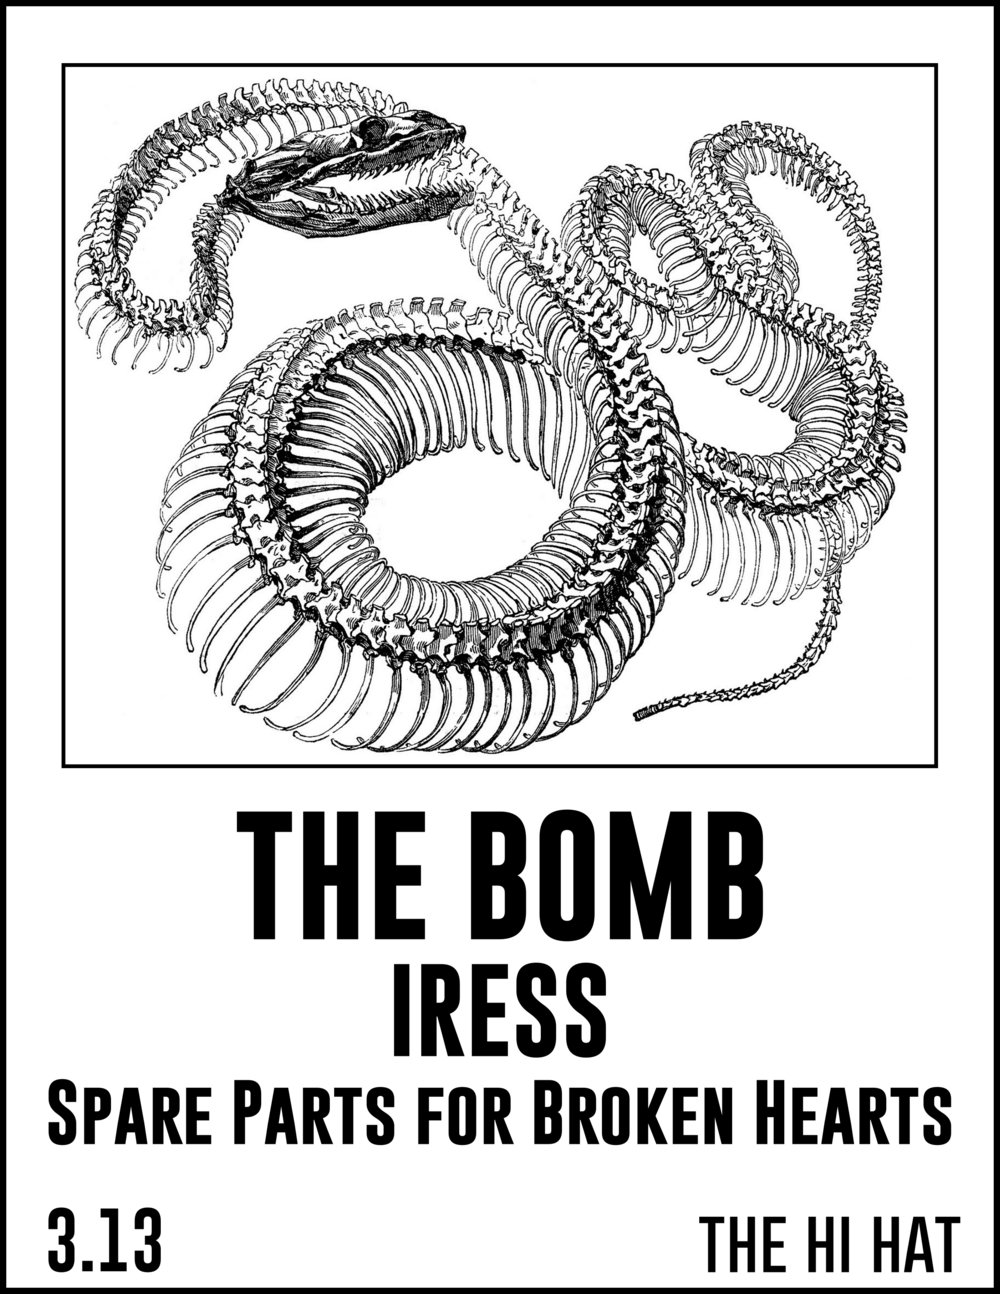 Get urs  http://ticketf.ly/2lRVcw6  $6.00 - $8.00; 21+   PLAG RECORDS PRESENTS:   The Bomb  Spare Parts For Broken Hearts   Iress   At The Hi Hat